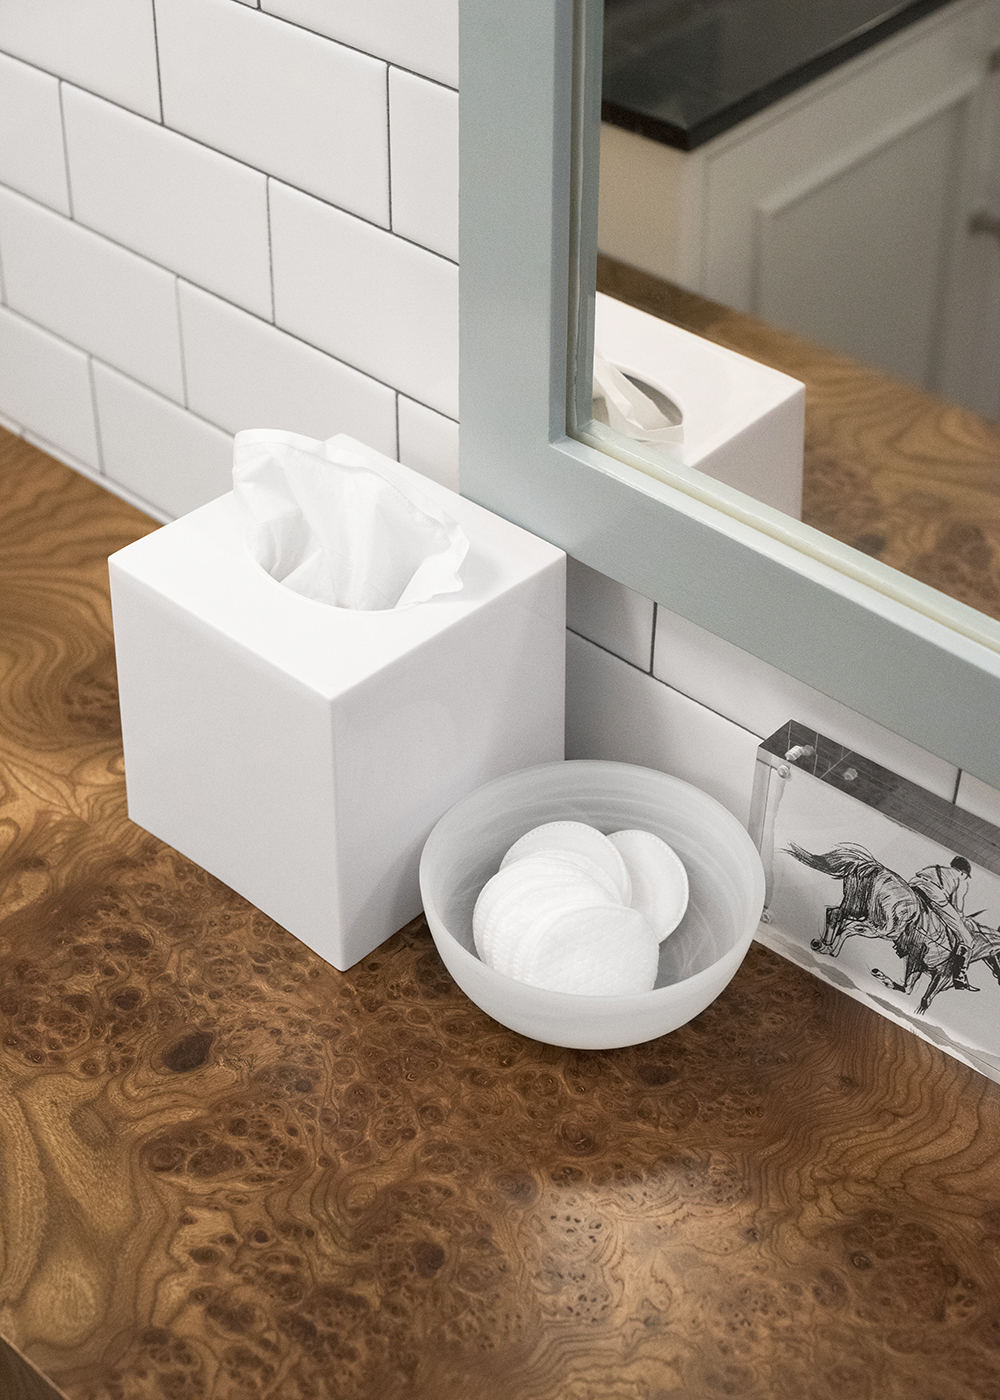 Form vs Function : Bath Storage Edition - roomfortuesday.com